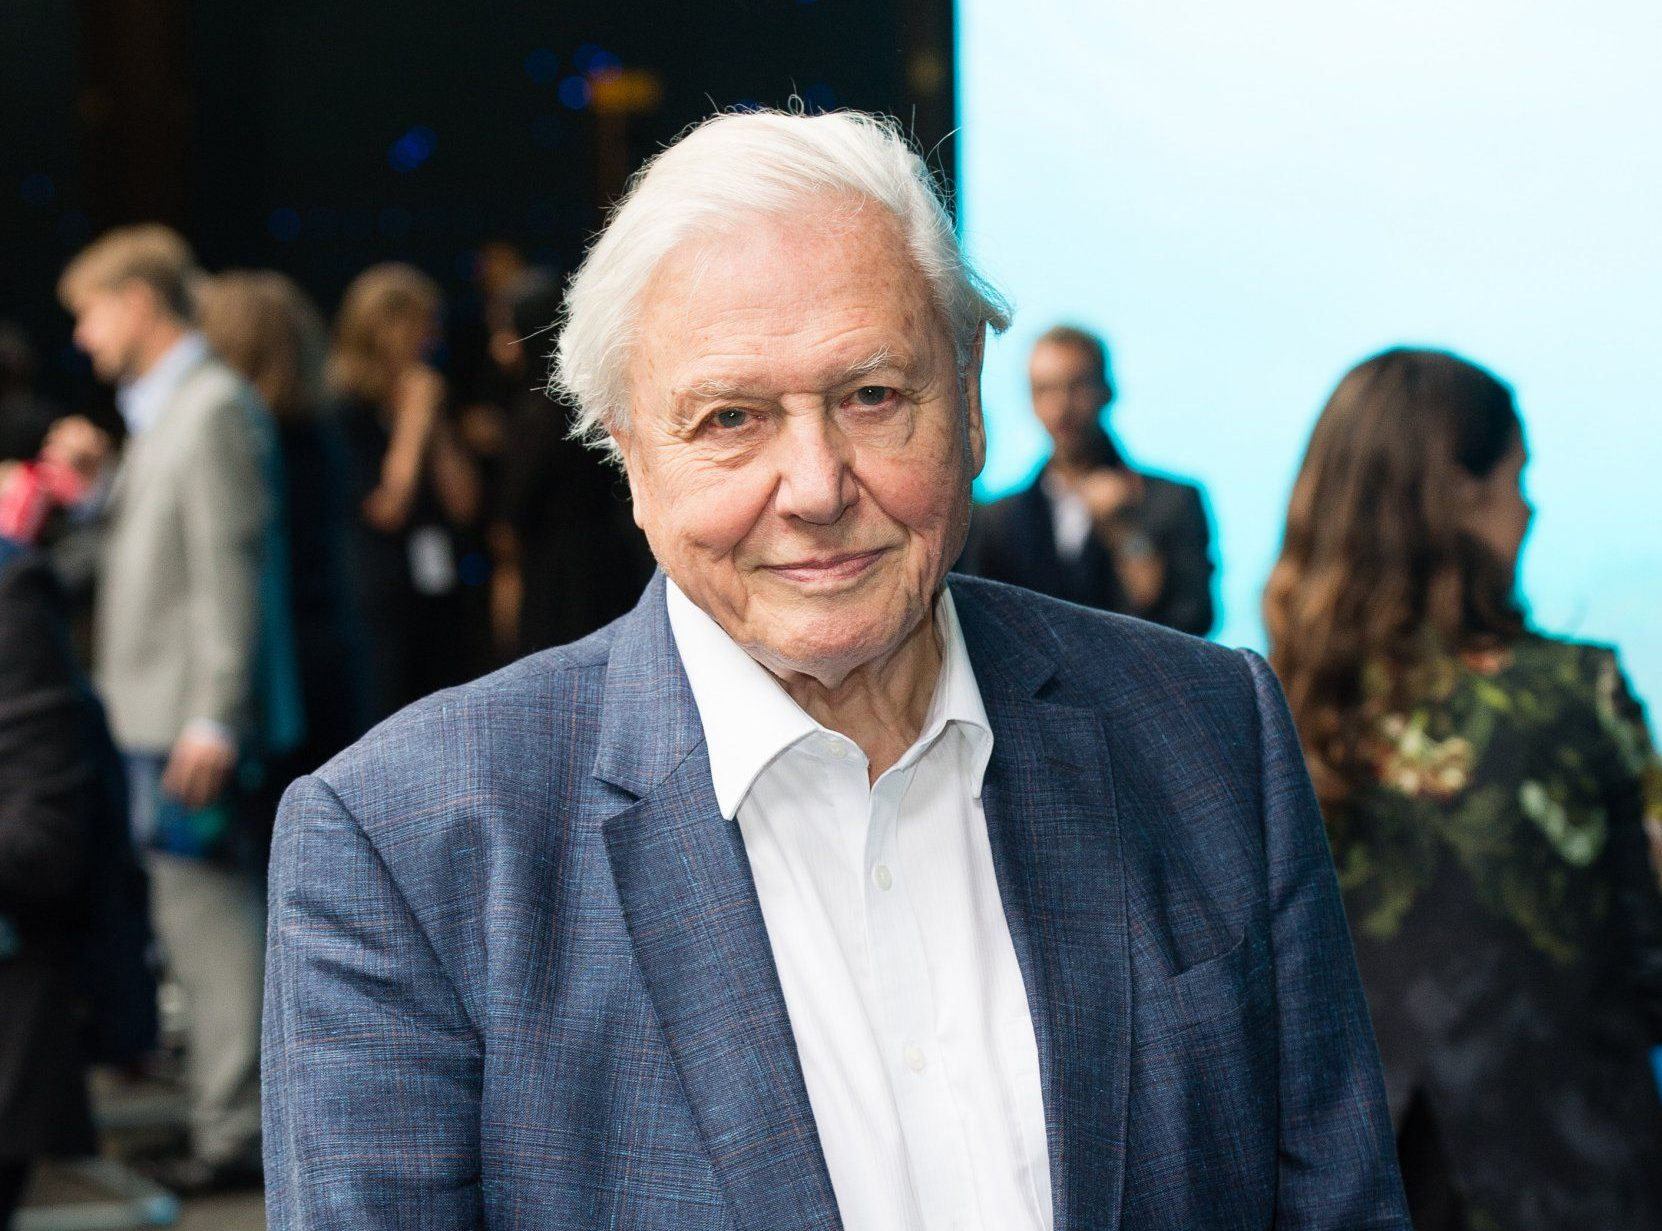 Sir David Attenborough teases new TV show will be 'soap opera' about animals in Africa